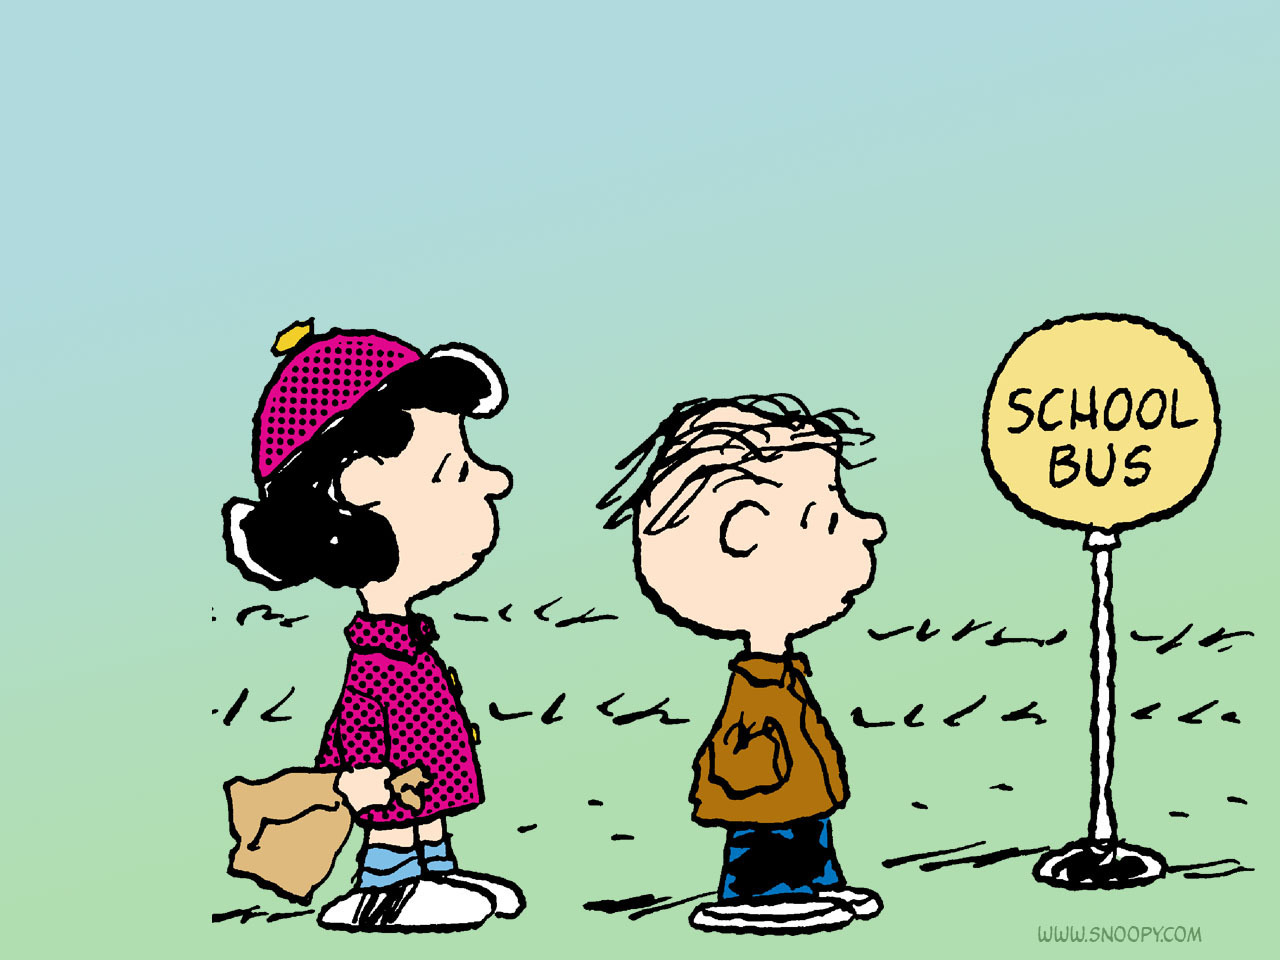 Peanuts school bus linus and lucy 1280x960